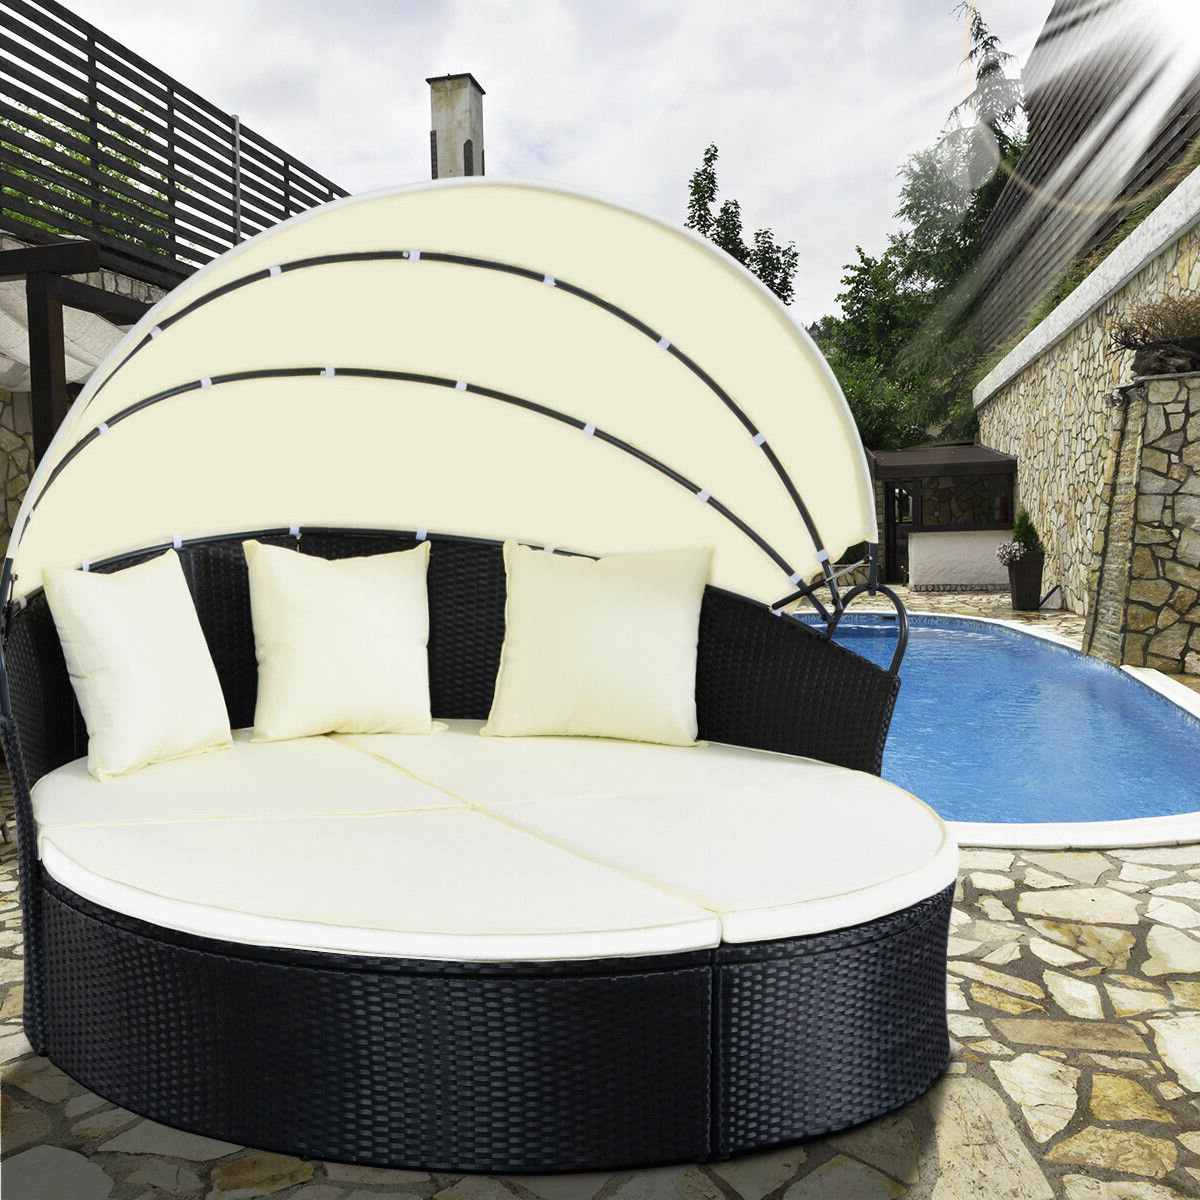 Hamisi Patio Daybed With Cushions With Most Up To Date Harlow Patio Daybeds With Cushions (View 7 of 20)